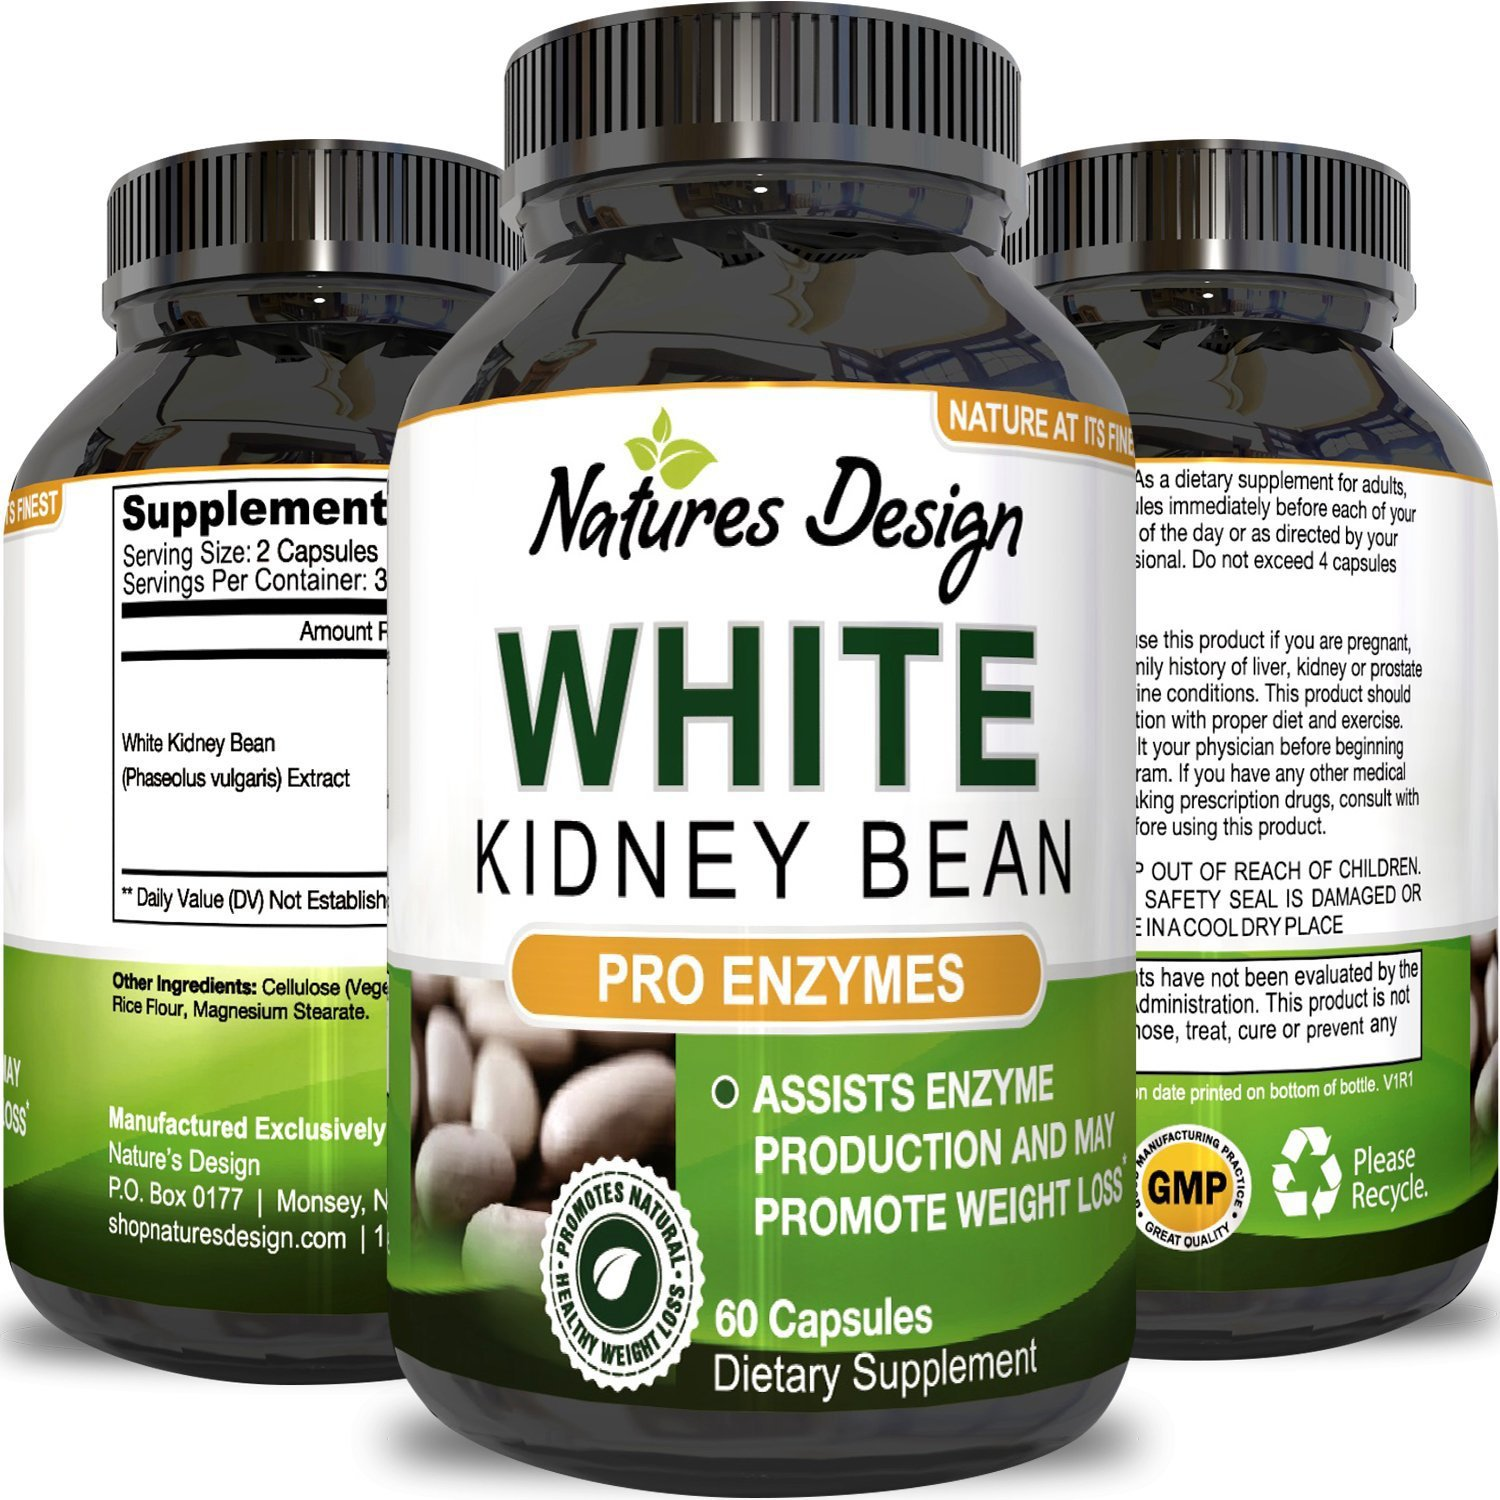 Pure White Kidney Bean Extract- 100% Effective and Optimized for Weight Loss - Carb Blocker and Prevents Fat From Forming - USA Made By Natures Design by Natures Design